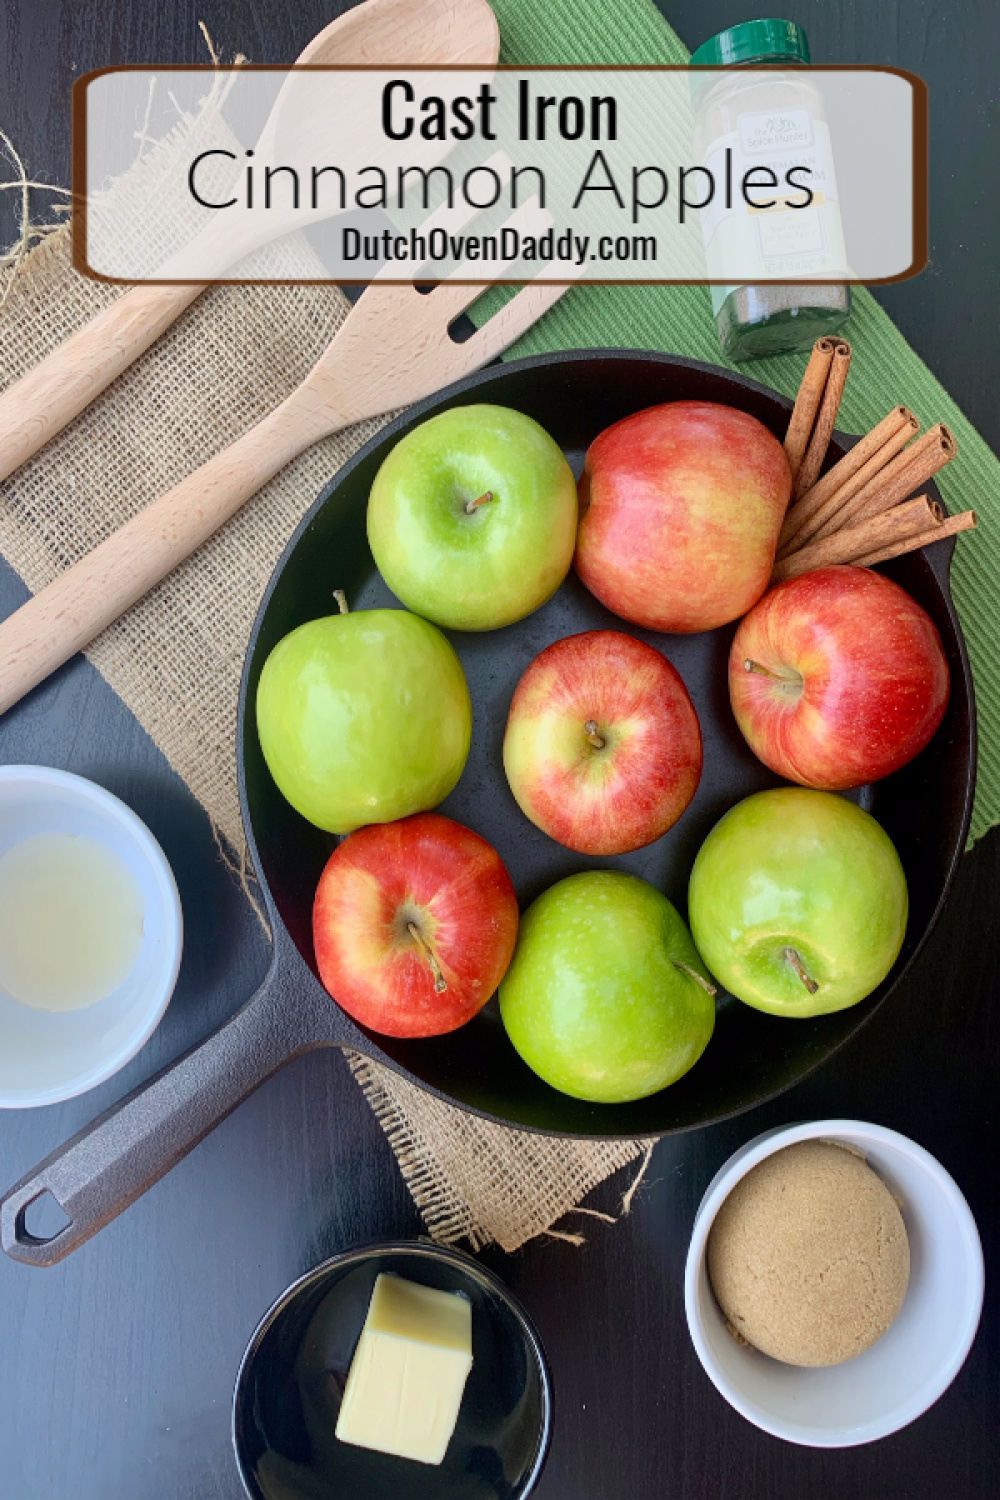 Ingredients to make cinnamon apples in a cast iron skillet